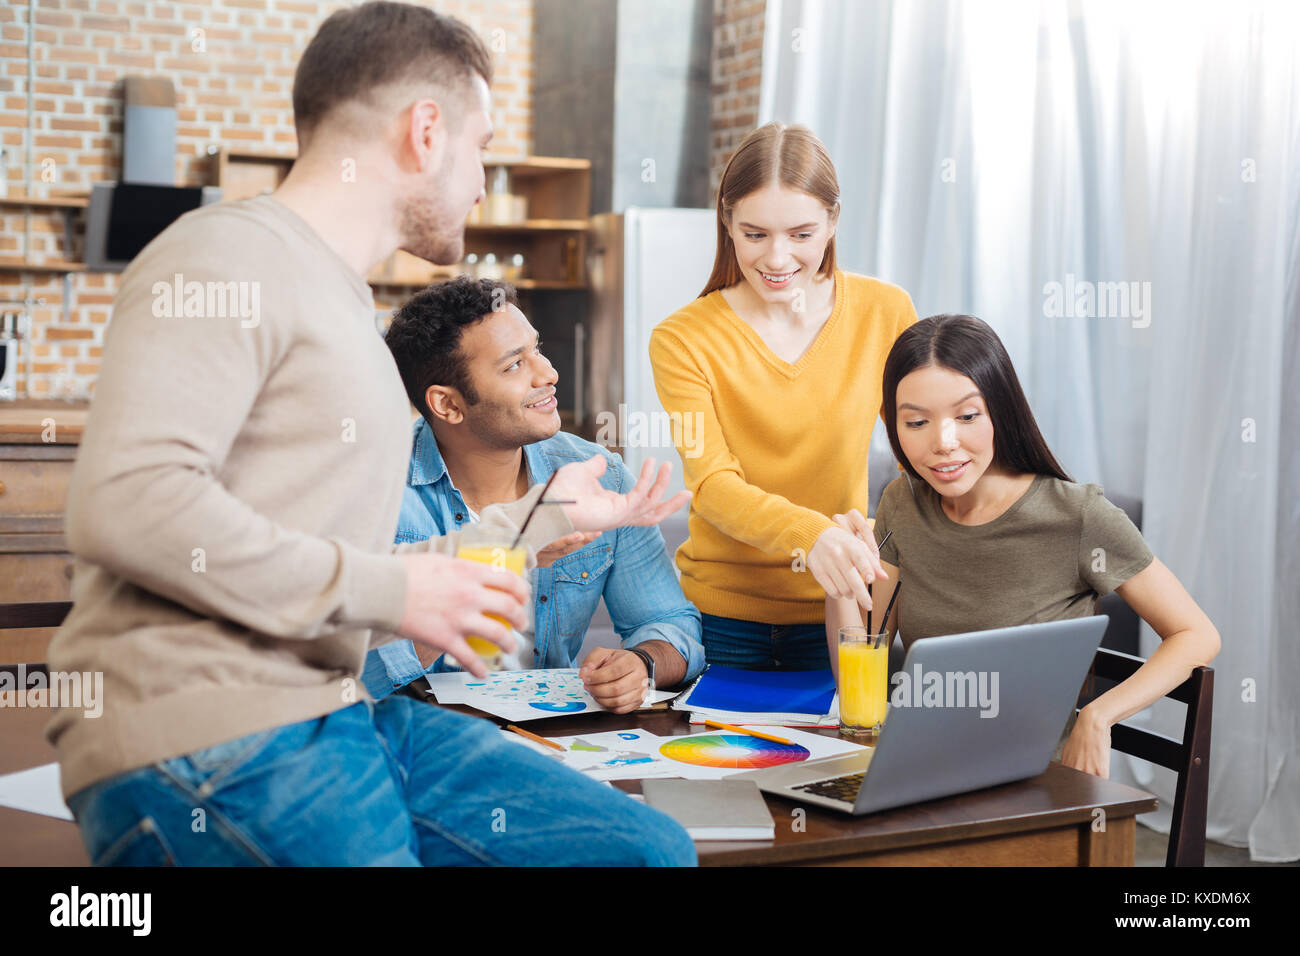 Surprised people smiling while their fellow student telling about her project - Stock Image